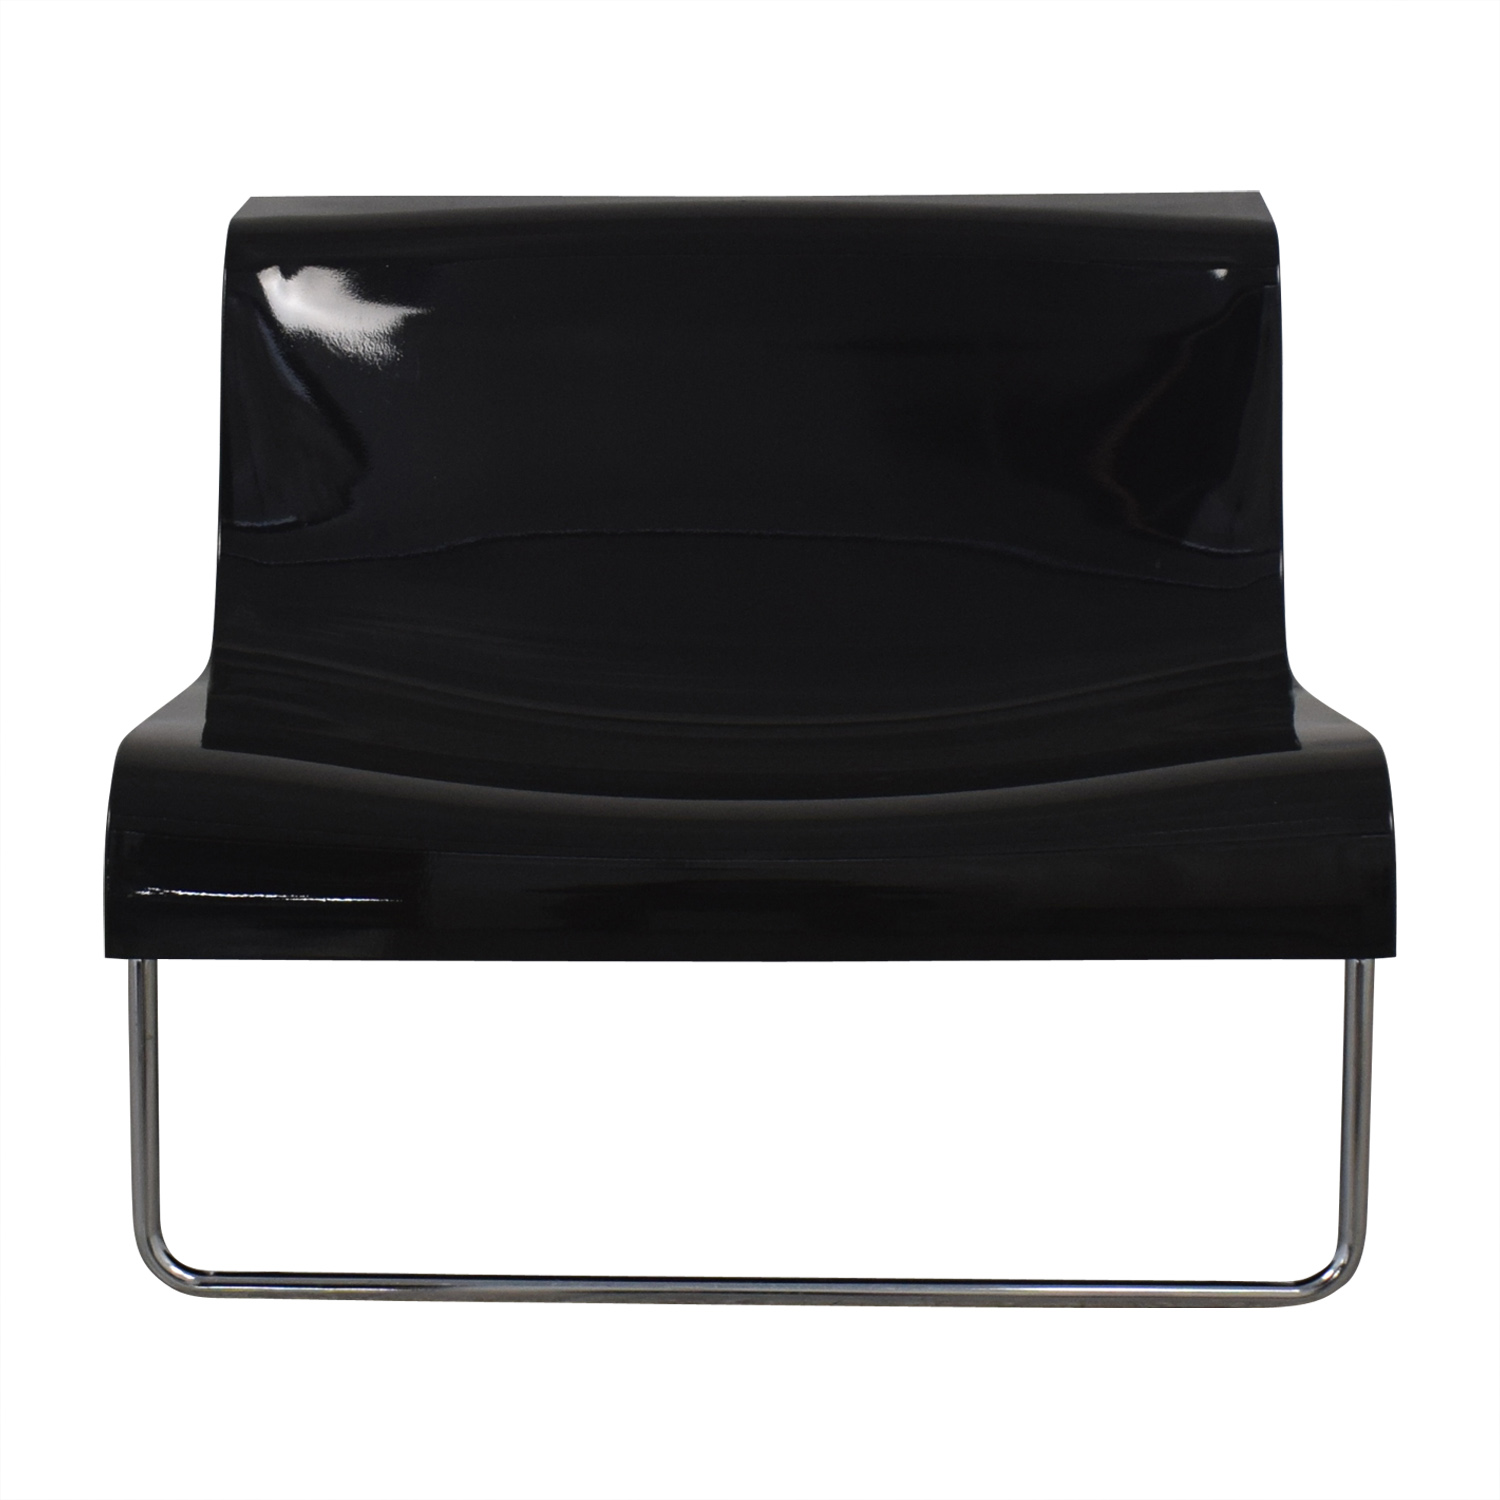 Kartell Kartell Form Chair by Piero Lissoni nyc